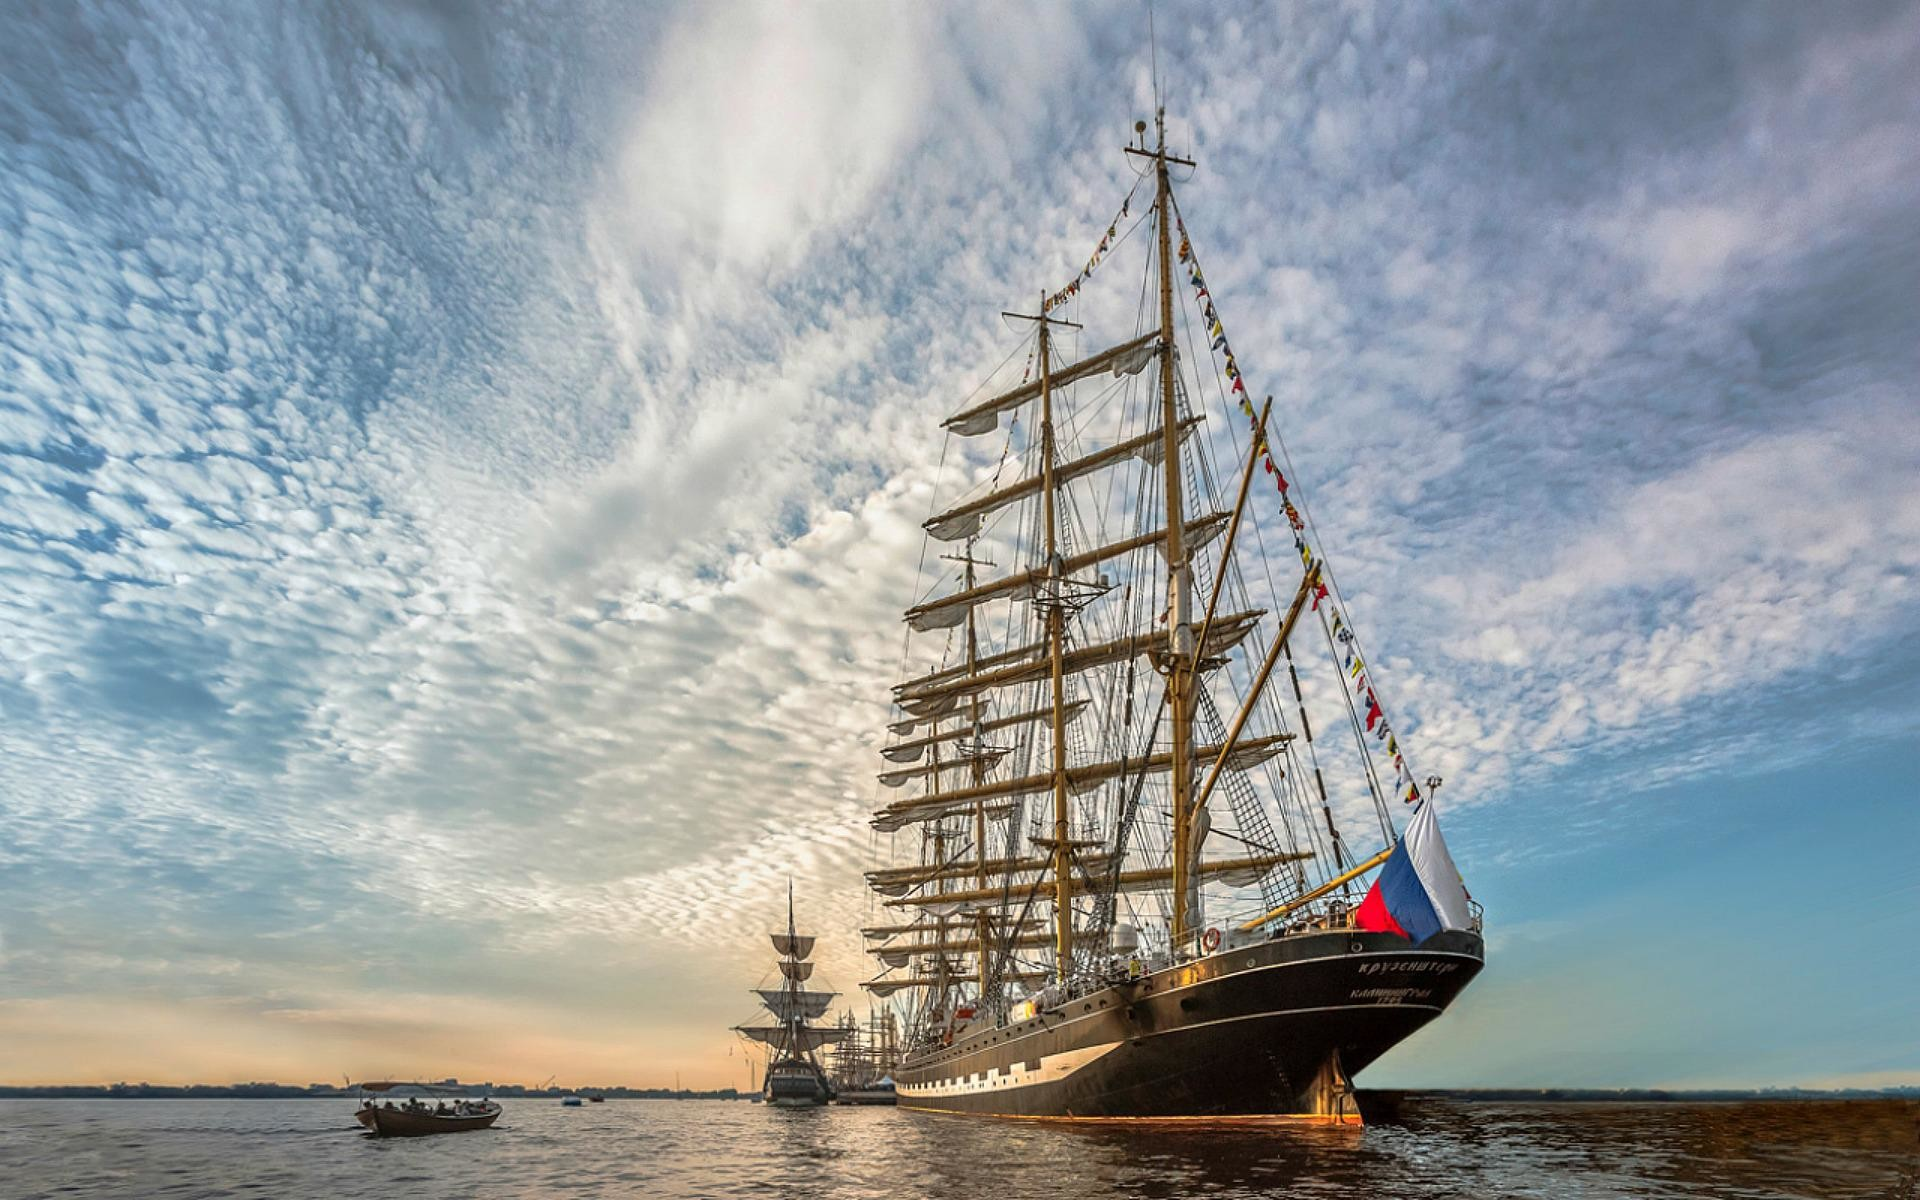 Tall Ships Wallpaper 64 images 1920x1200